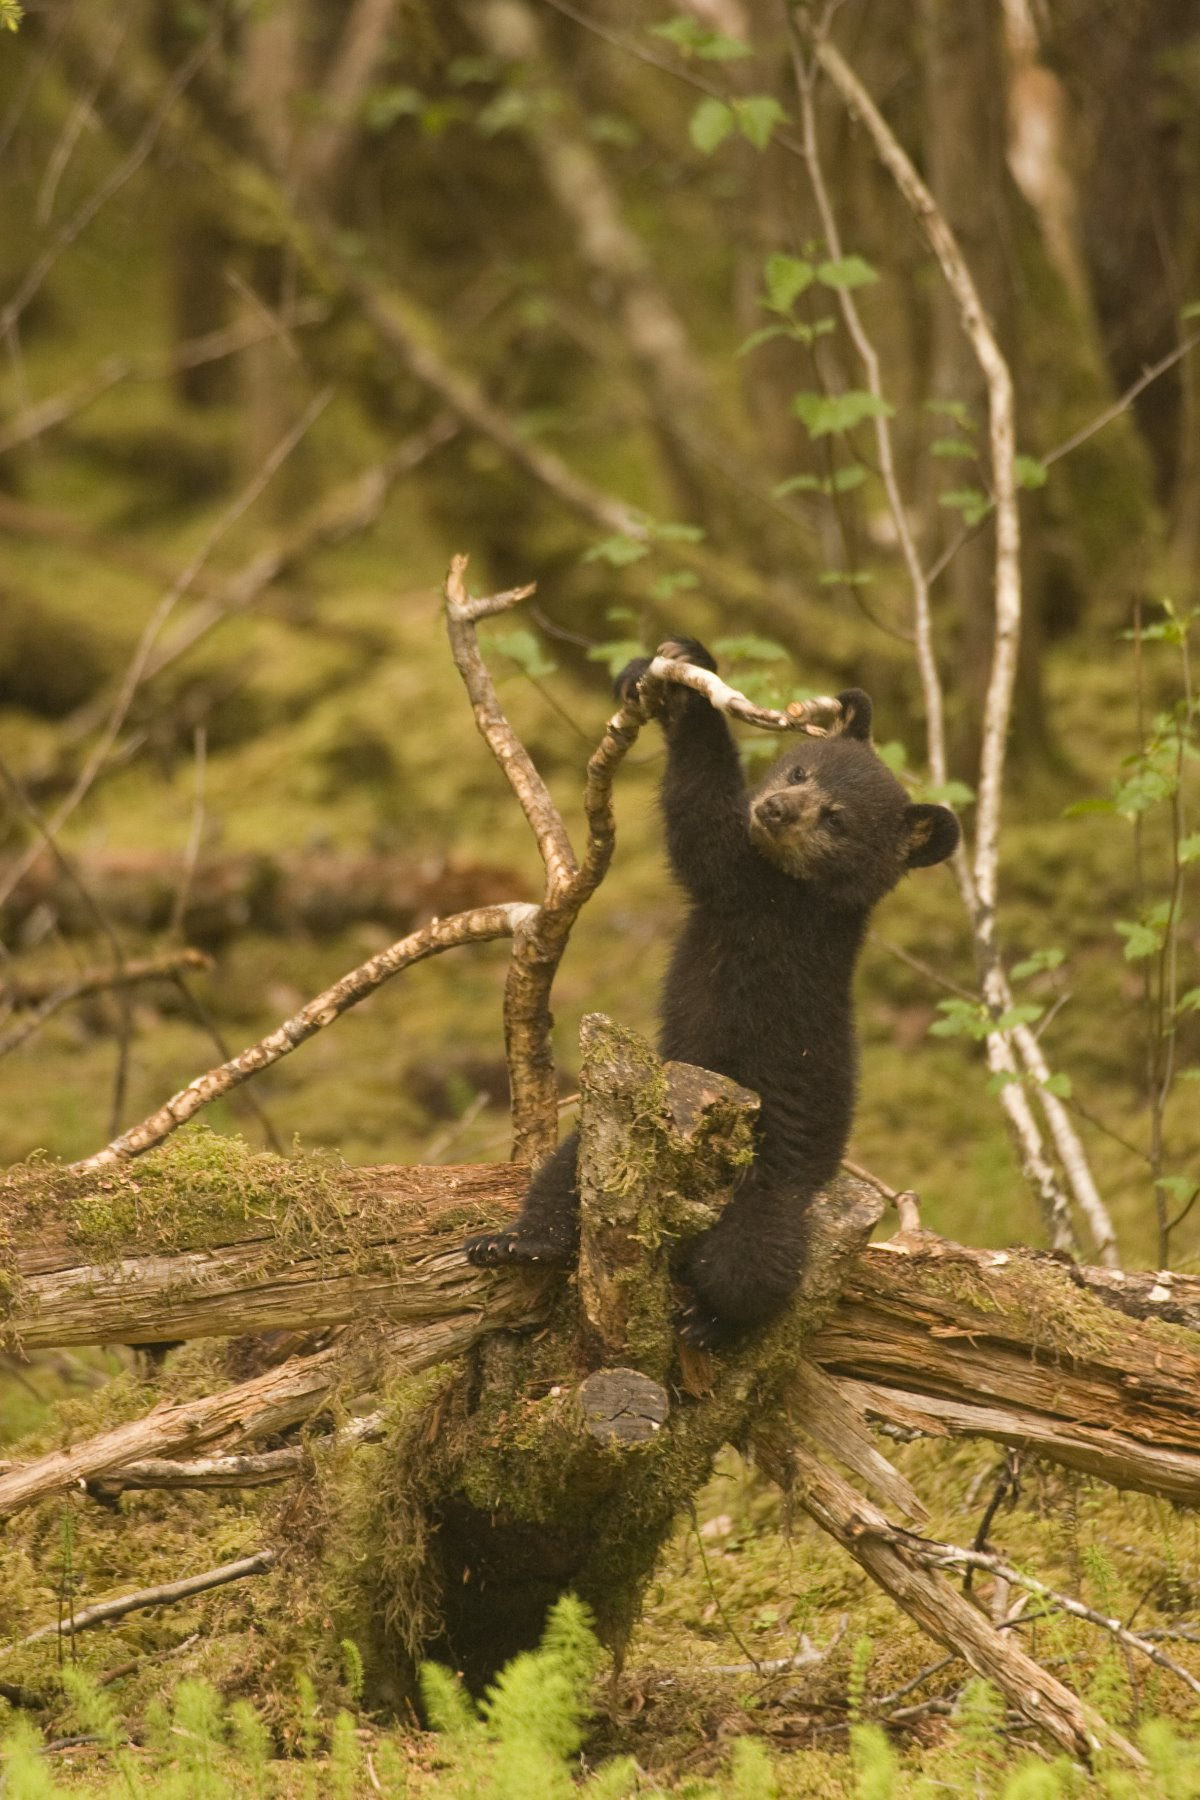 Black bear cub playing with a fallen log.